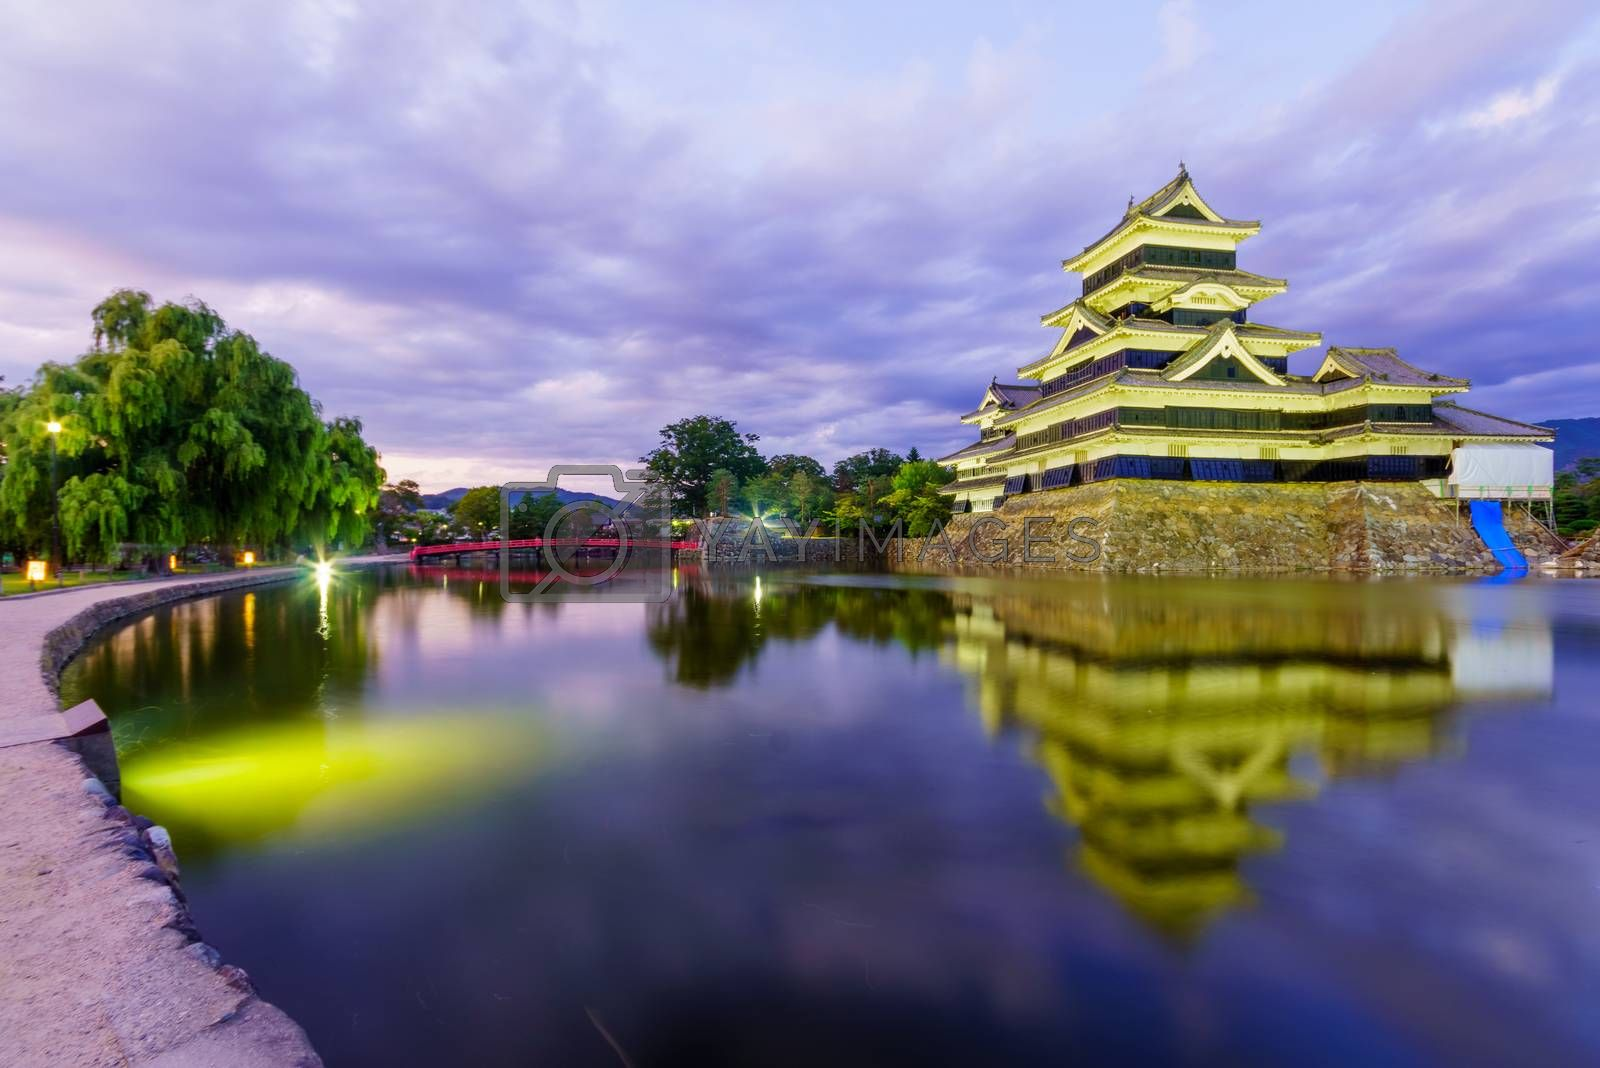 Night view of the Matsumoto Castle (or Crow Castle) and bridge, in Matsumoto, Japan